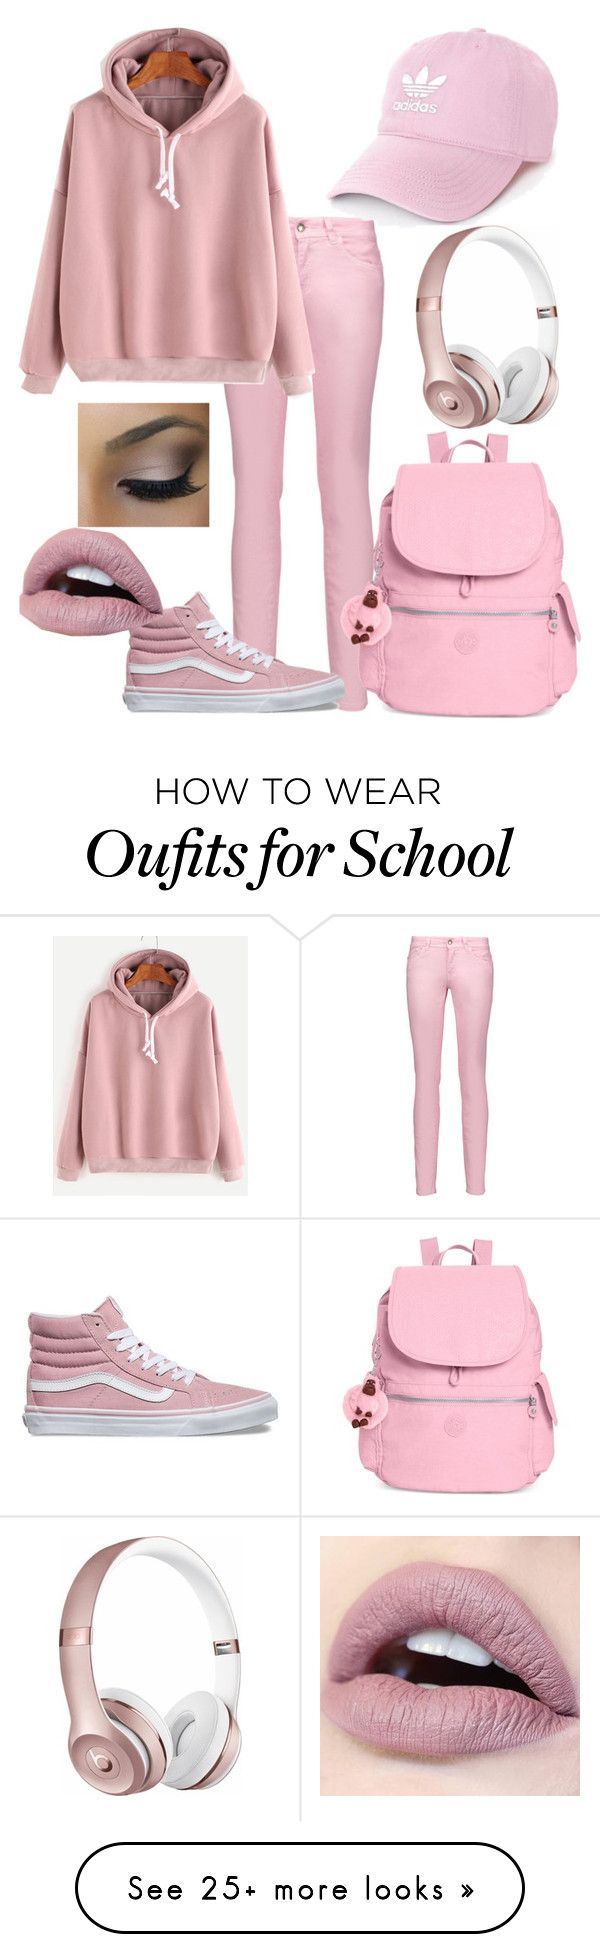 """""""Pink school outfit"""" by levoral on Polyvore featuring Just Cavalli, adidas, WithChic, Vans, Kipling and Beats by Dr. Dre"""